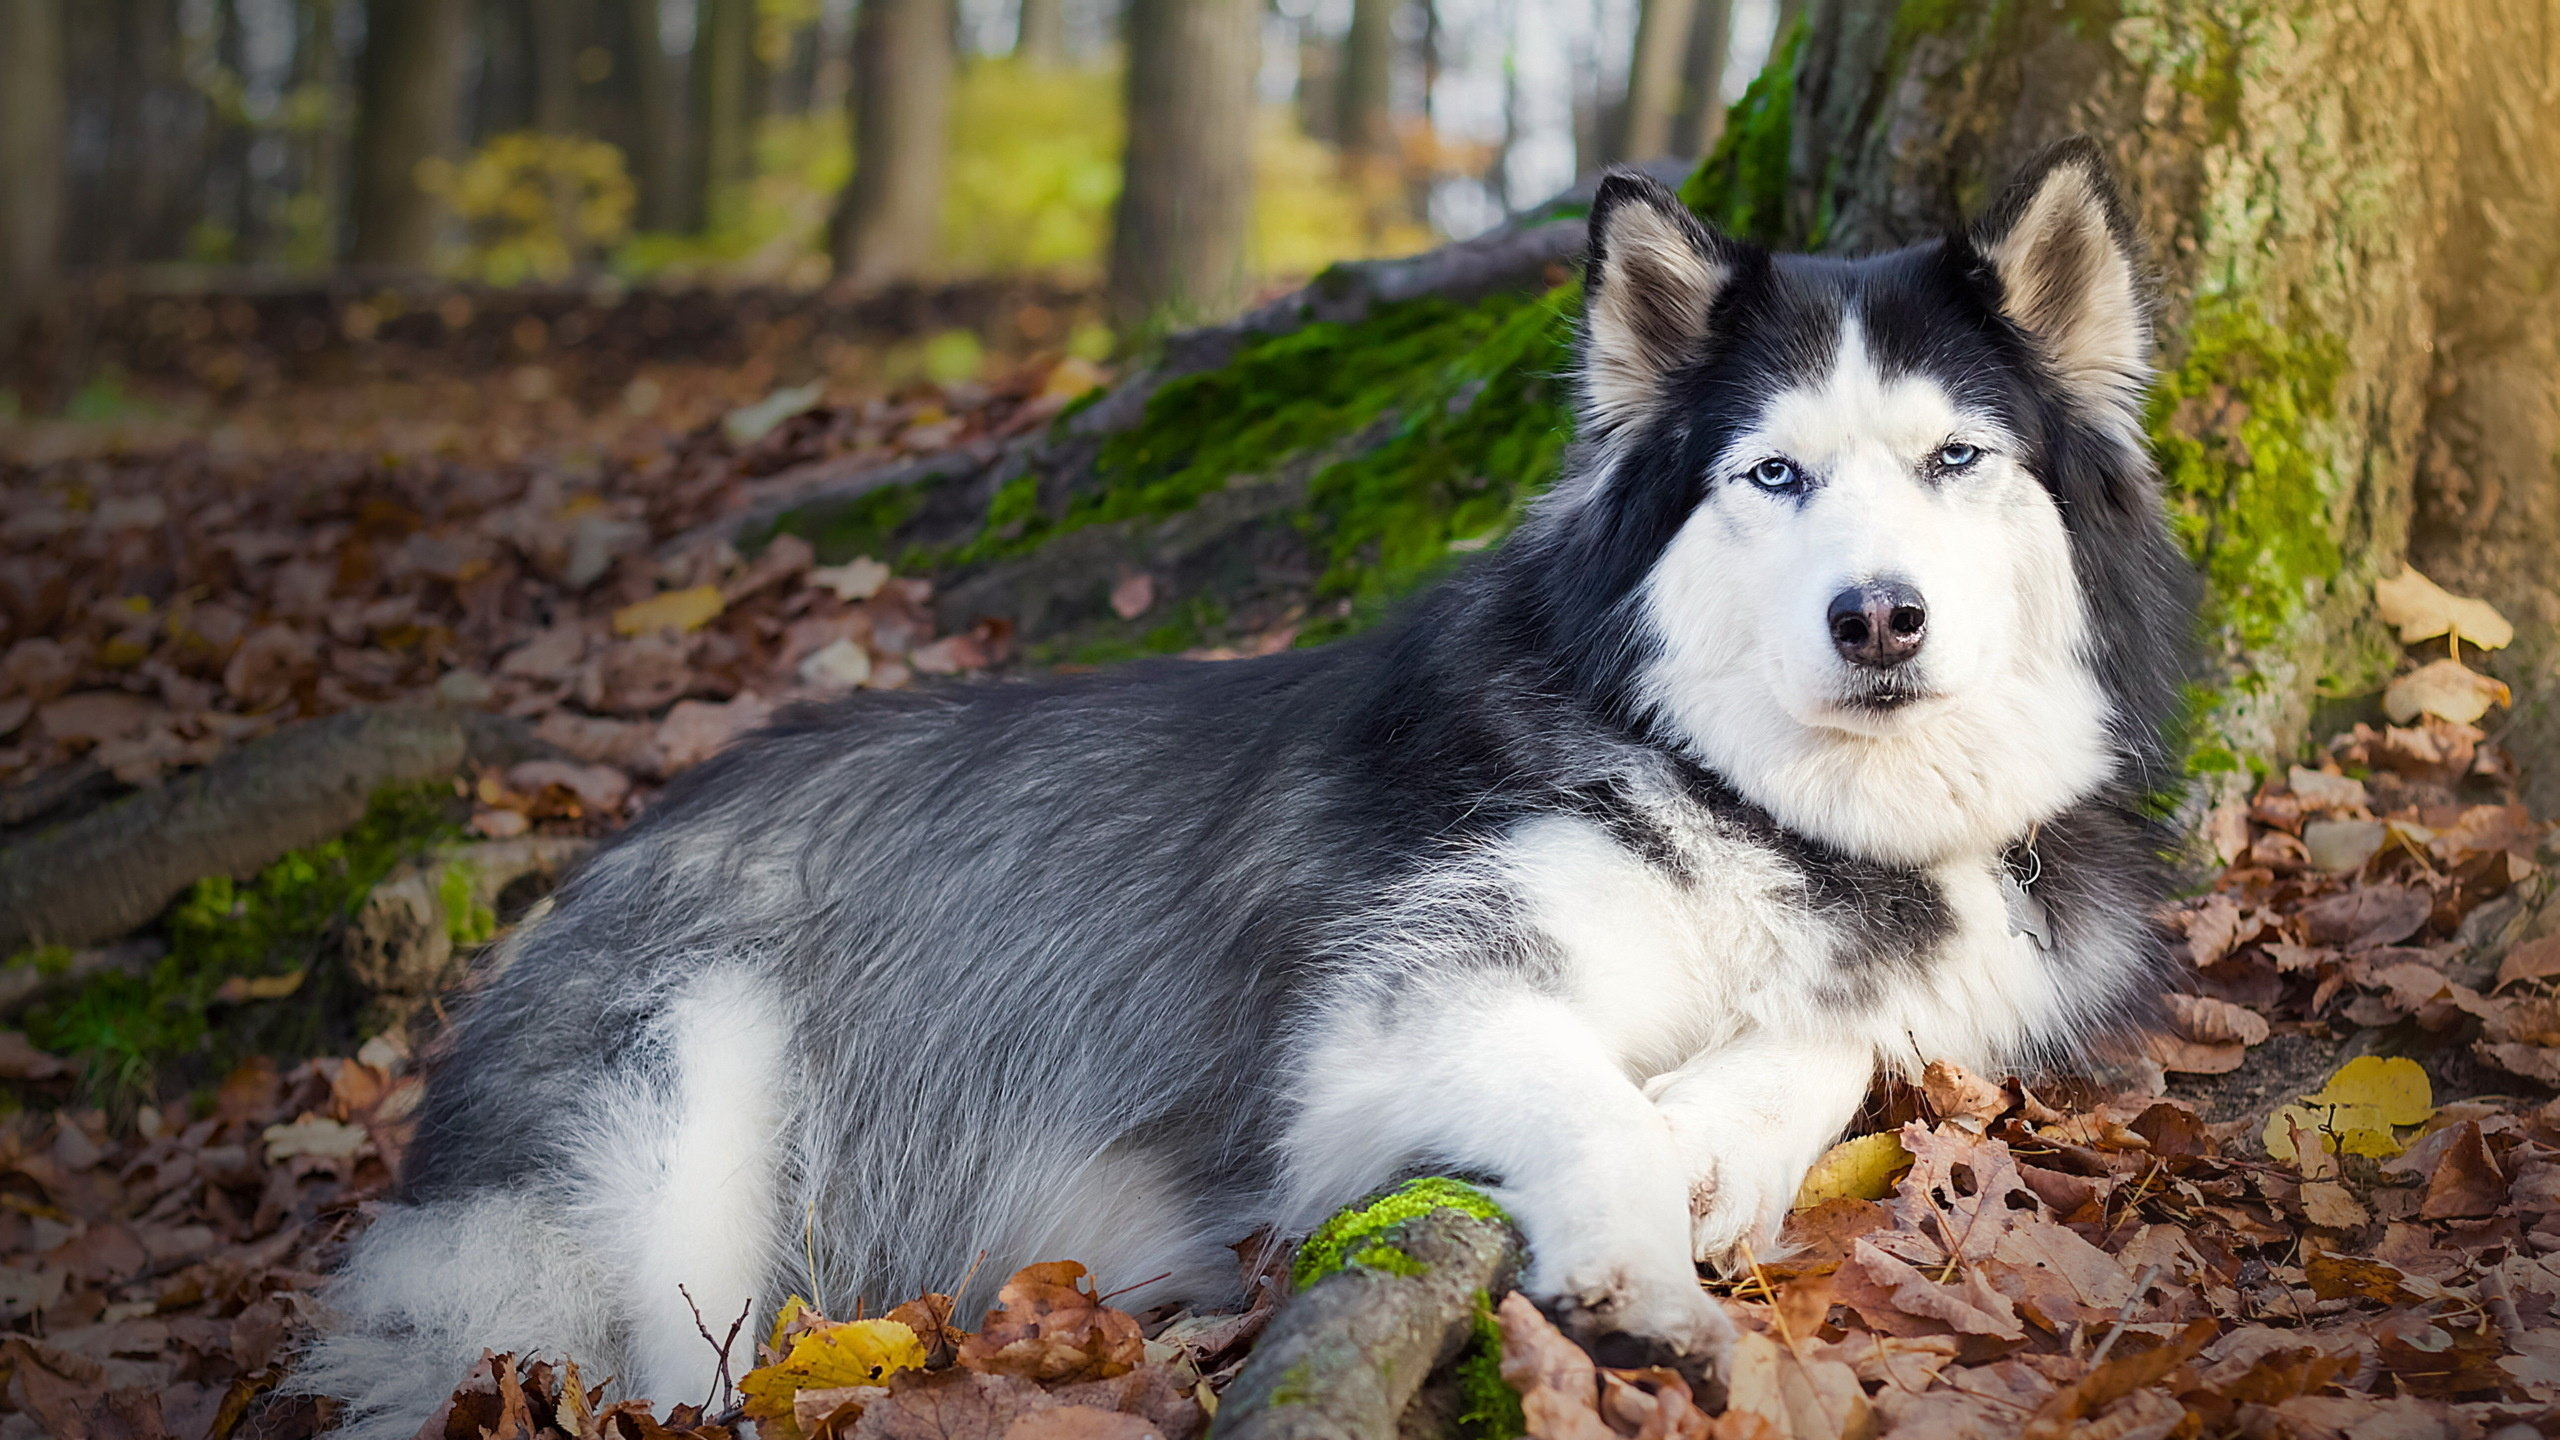 Free Husky high quality wallpaper ID:198362 for hd 2560x1440 desktop